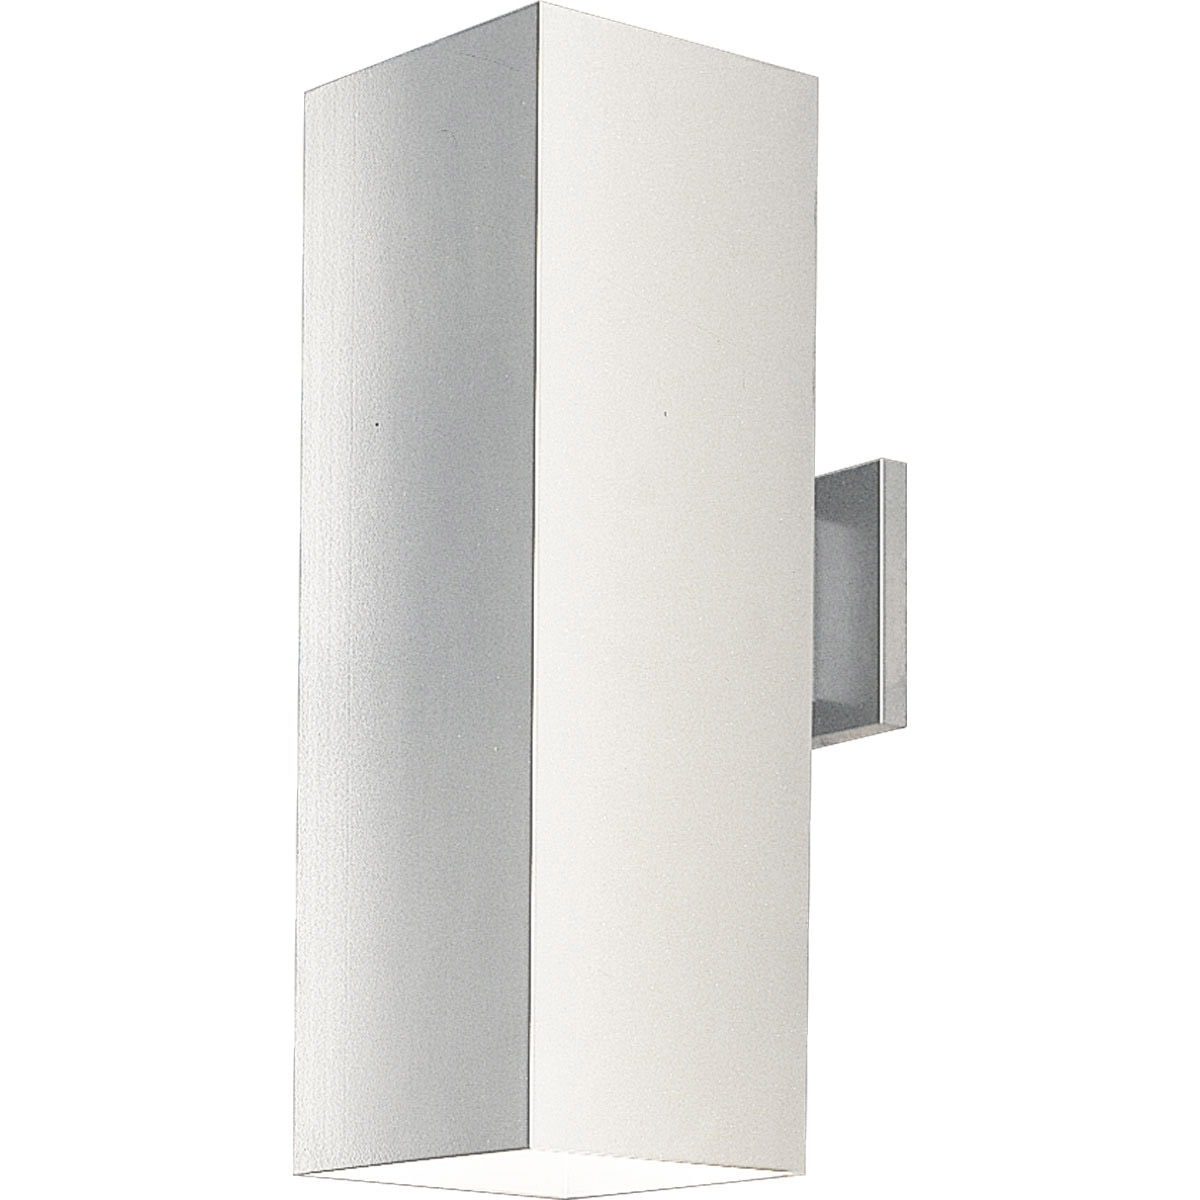 Recent Lighting P5644 30 Square Outdoor Wall Mount Fixture Within White Outdoor Wall Mounted Lighting (View 18 of 20)